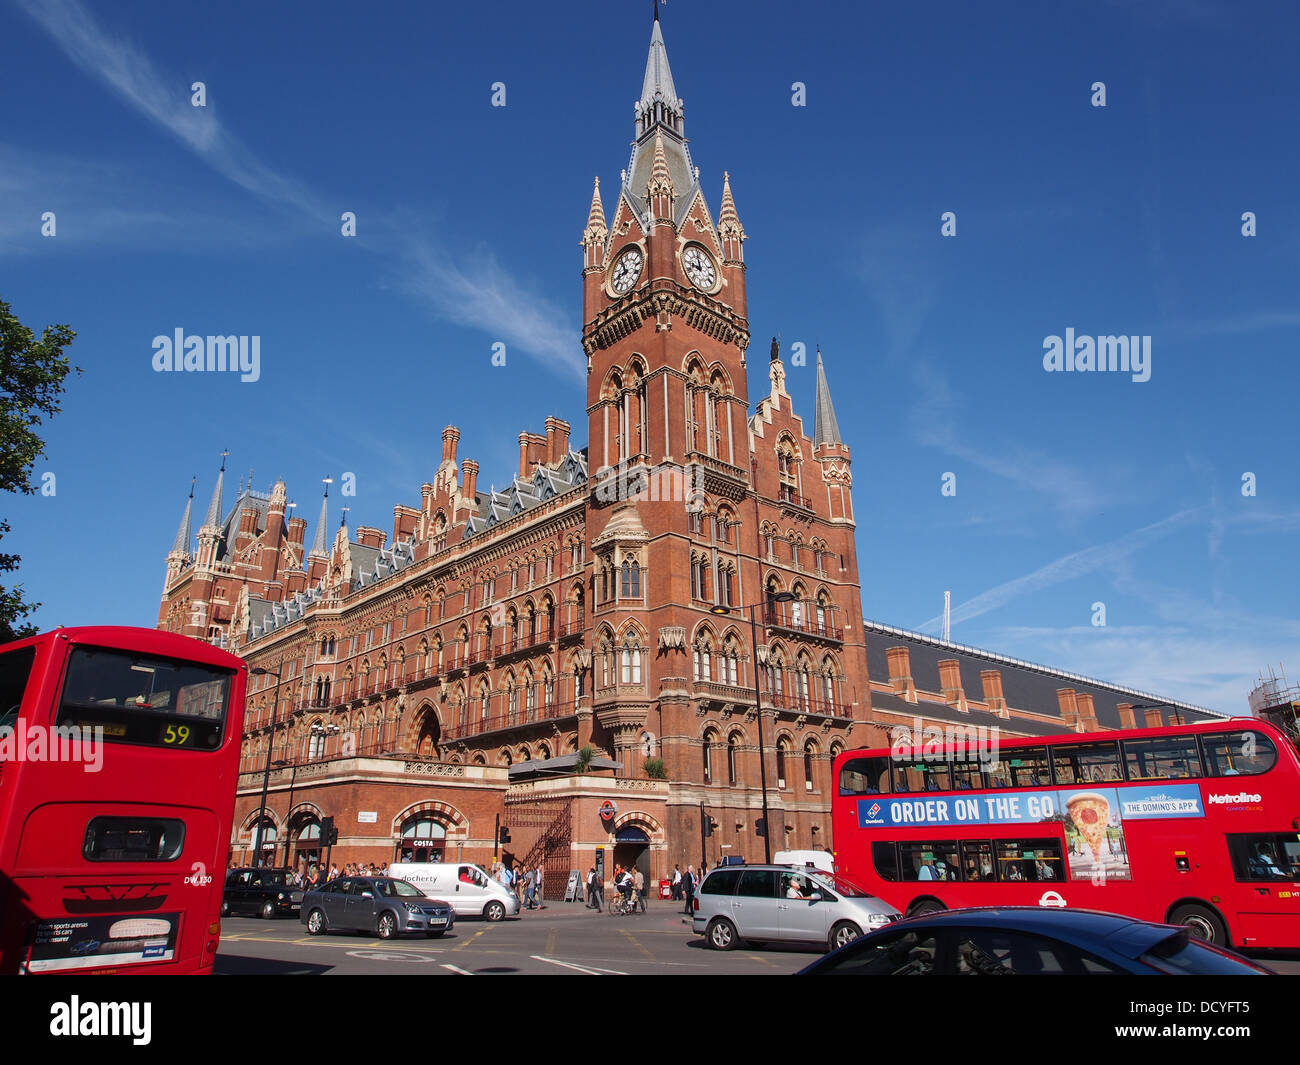 London, St. Pancras railway station hotel - Stock Image